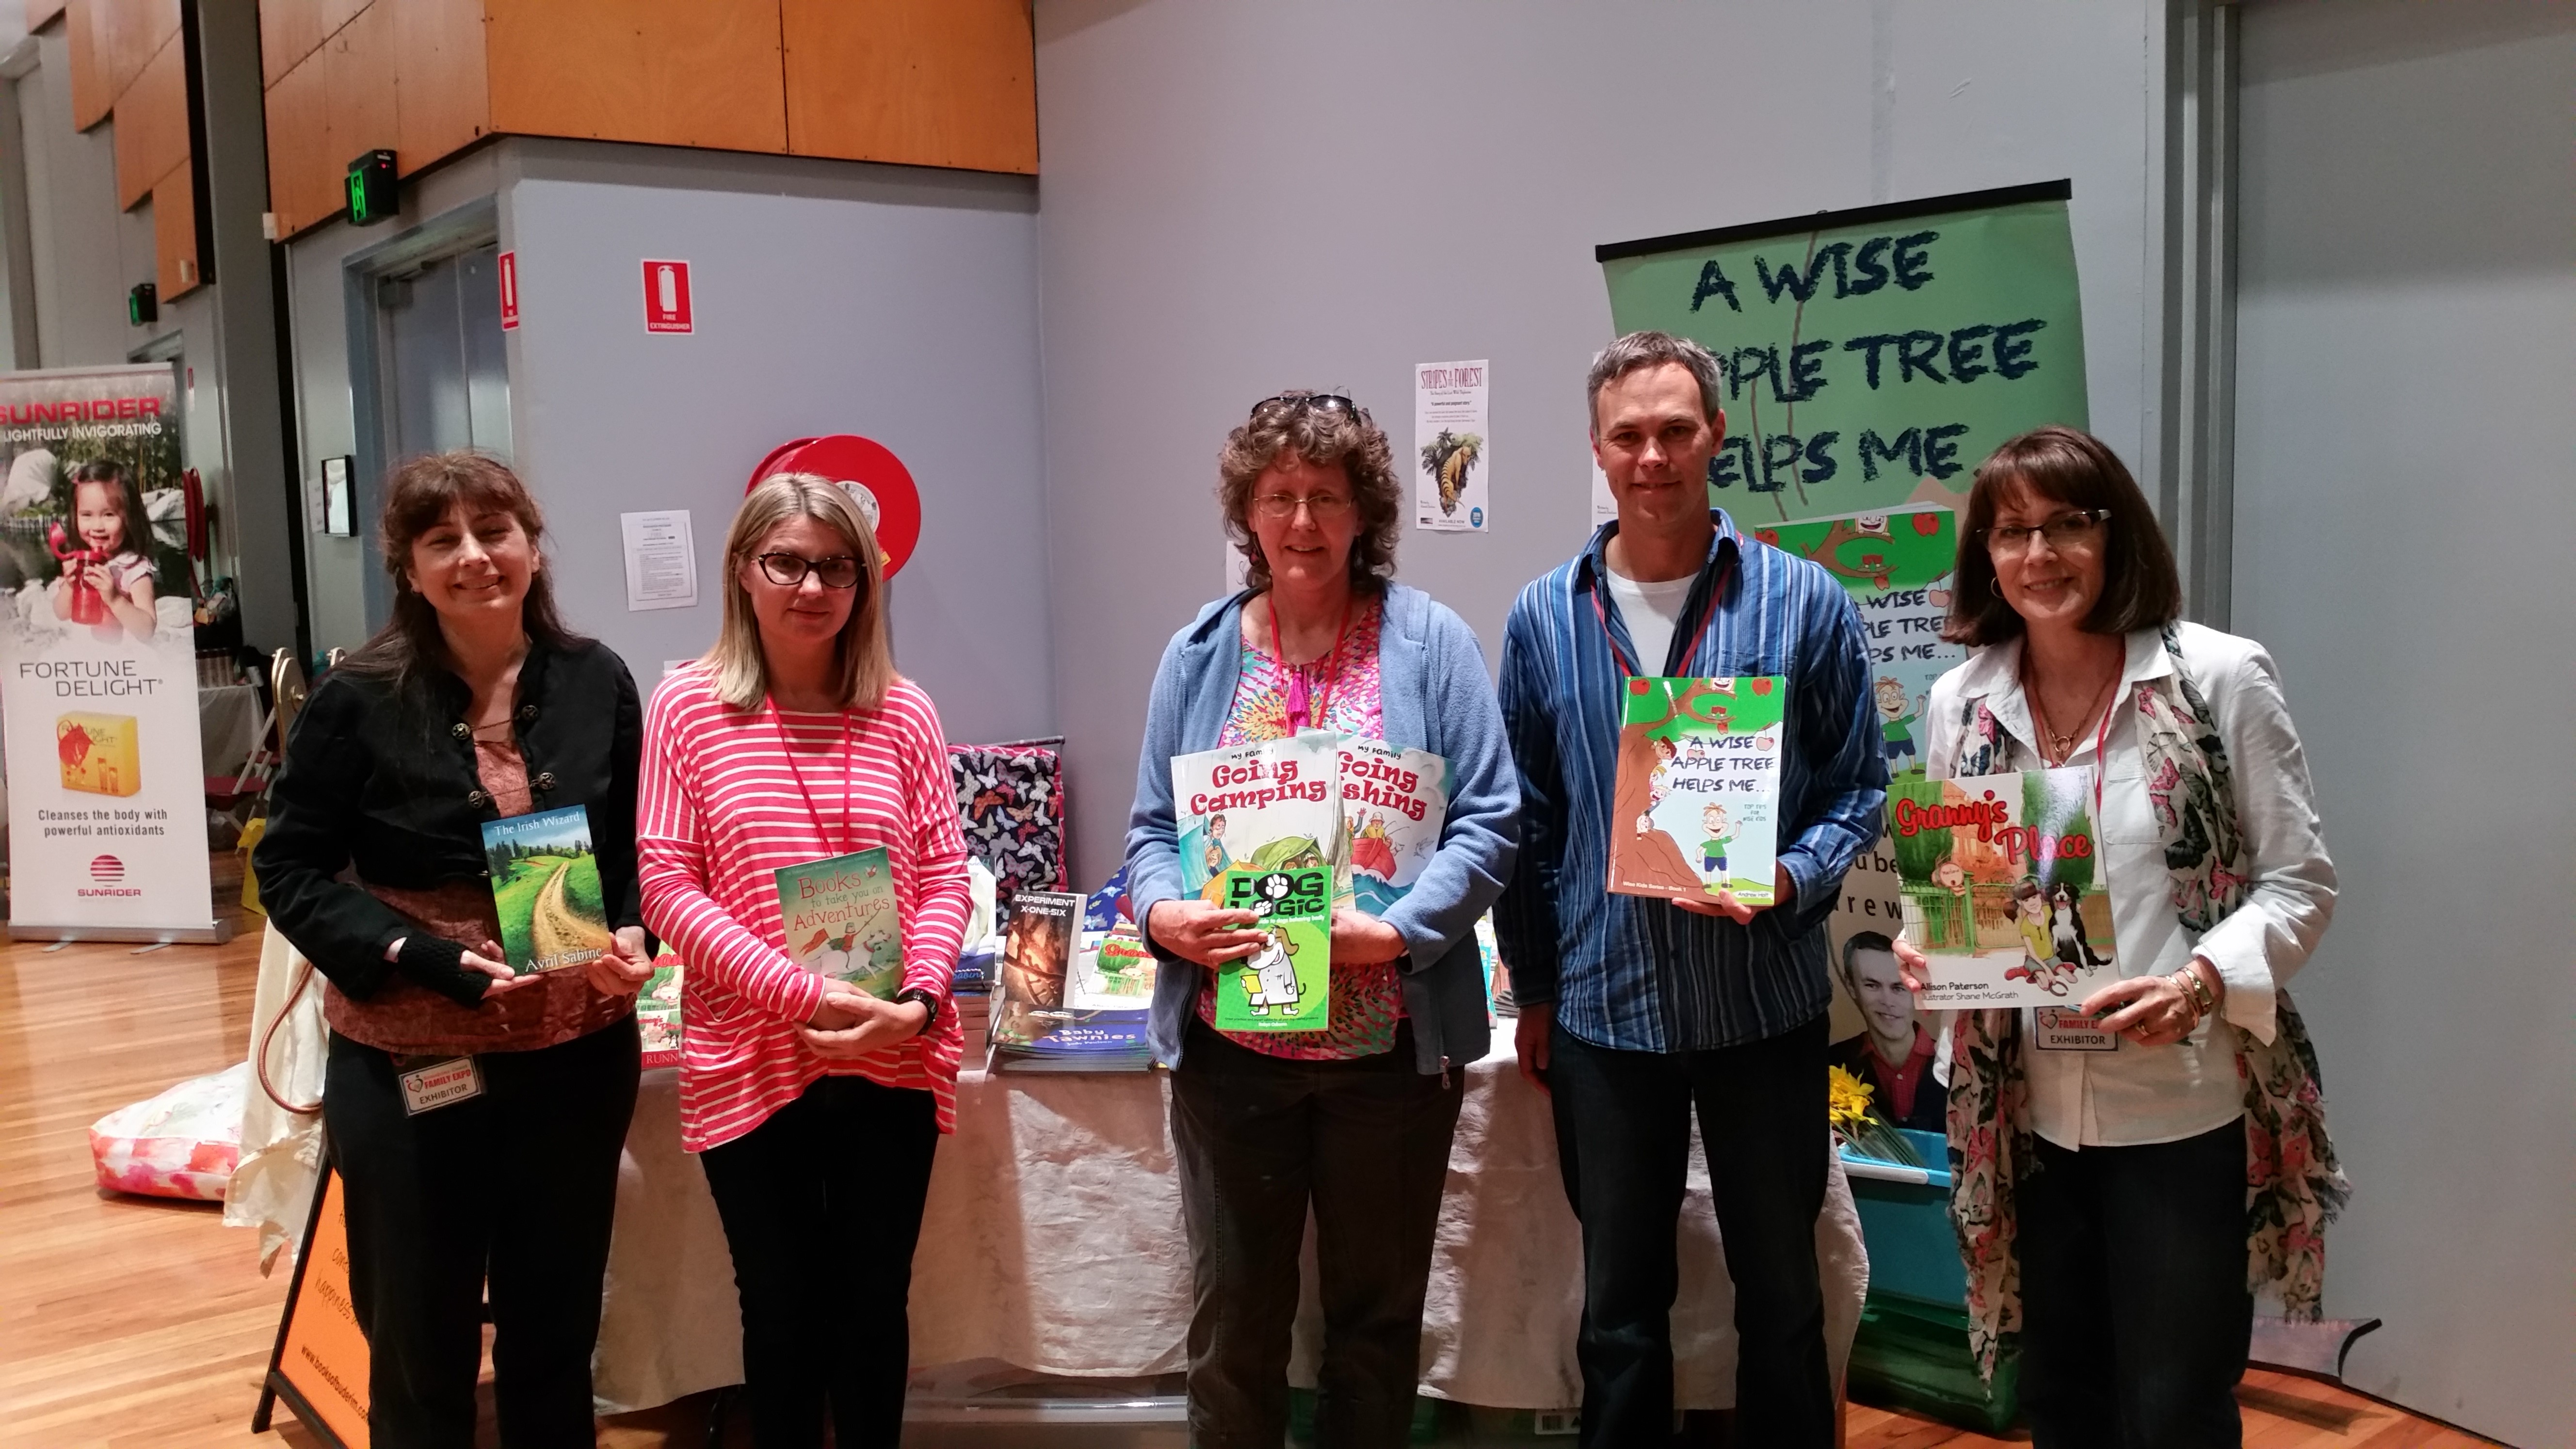 Local authors at the Sunshine Coast Family Expo. L to R Avril Sabine, Fiona Blond (Books on Buderim), me, Andrew Holt and Allison Paterson.